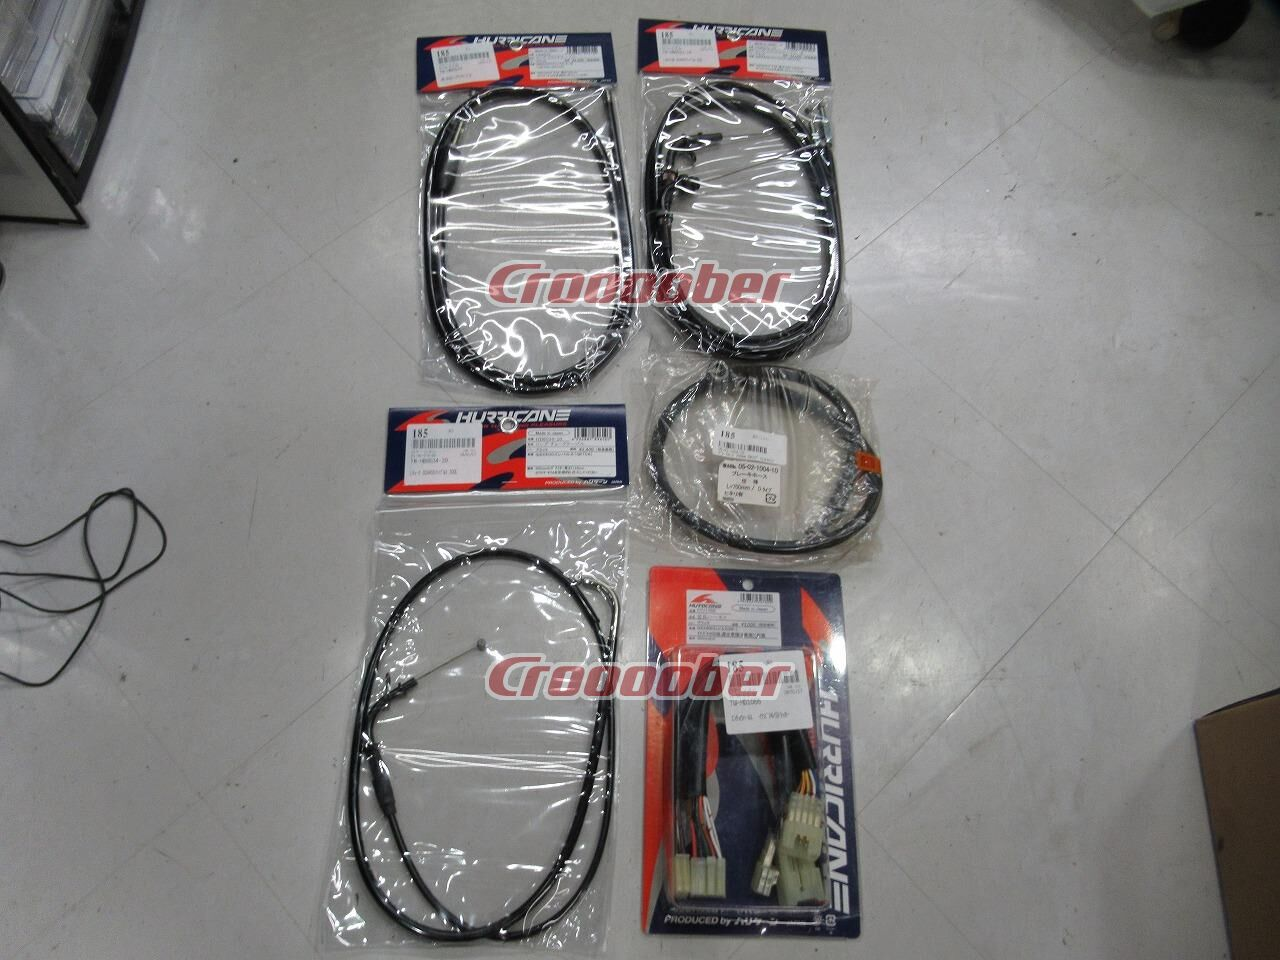 Hurricane 30 Cm Long Wire Harness Set GSX400 Impulse GK79A / 7CA   on wire leads, wire antenna, wire lamp, wire connector, wire sleeve, wire cap, wire ball, wire holder, wire nut, wire clothing,